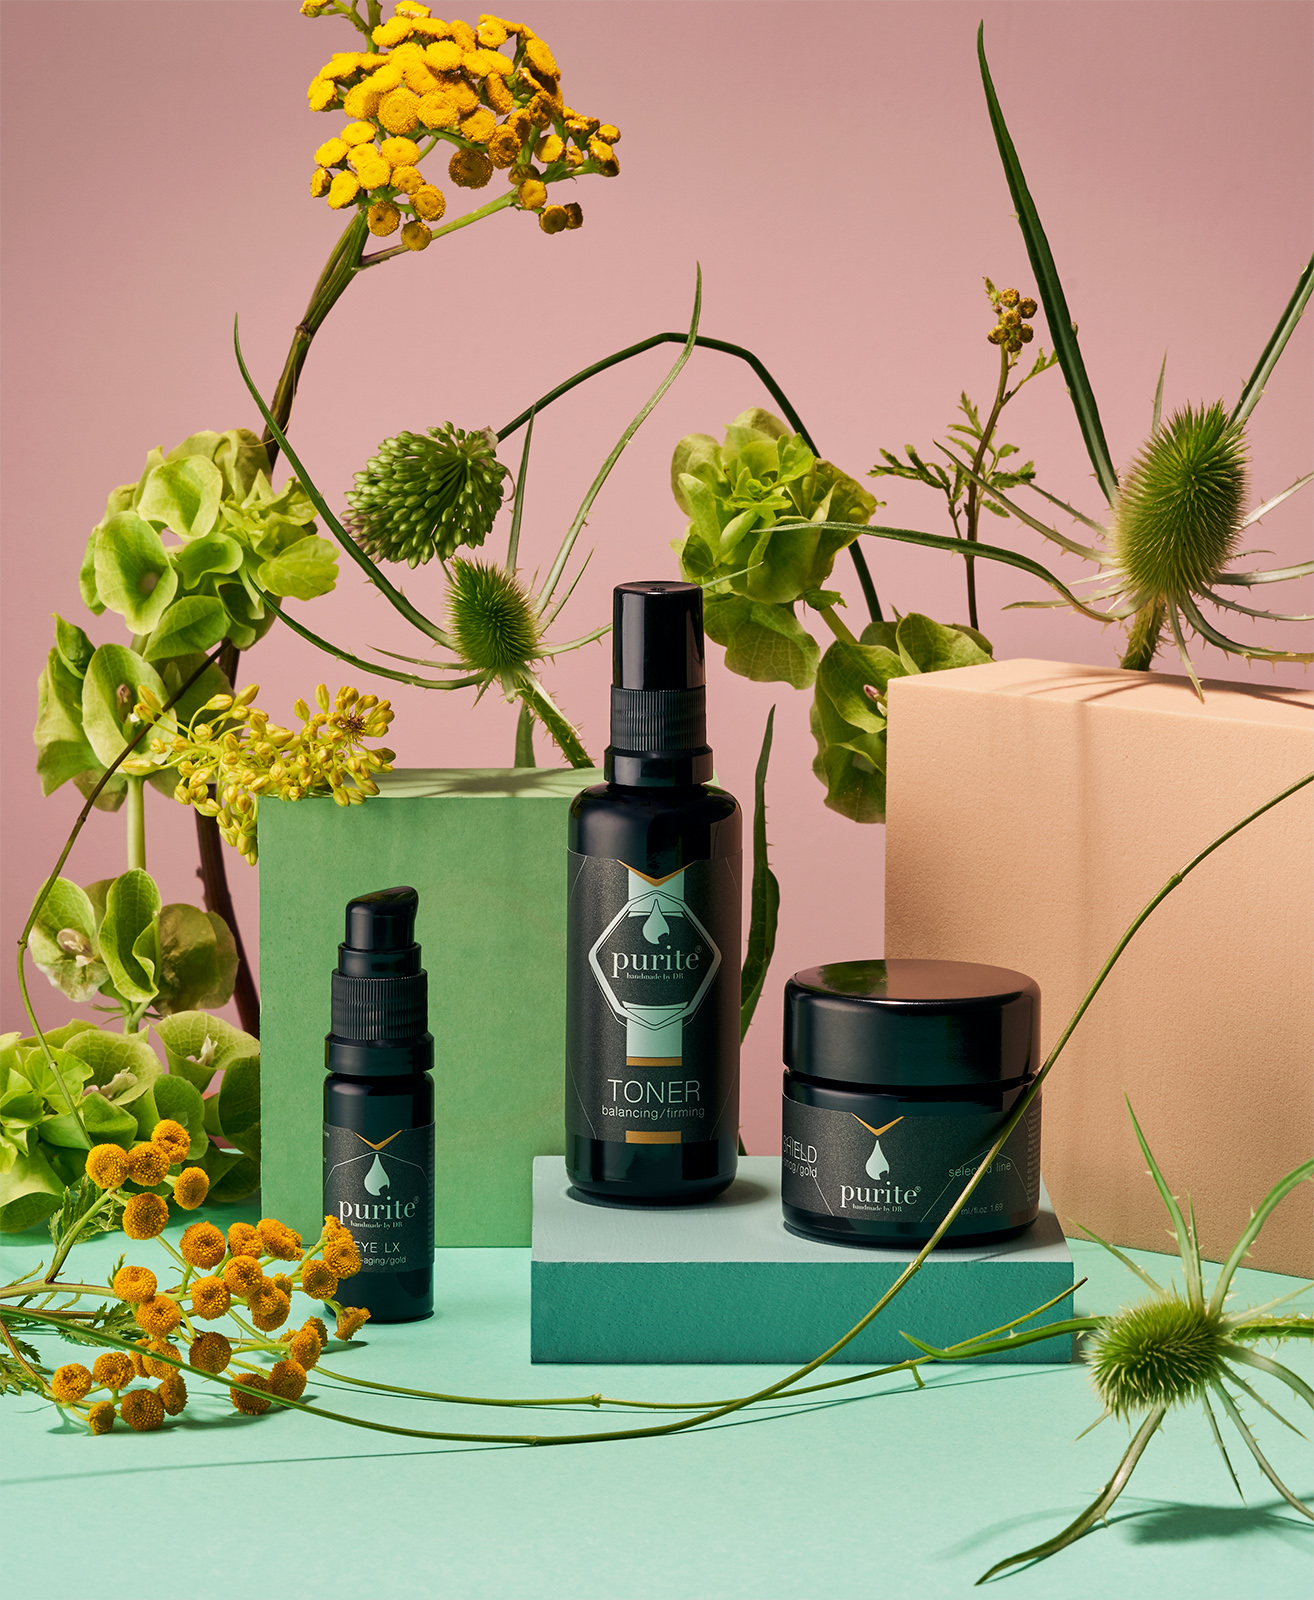 Still life for LABEL Magazine with flowers and purite natural cosmetics